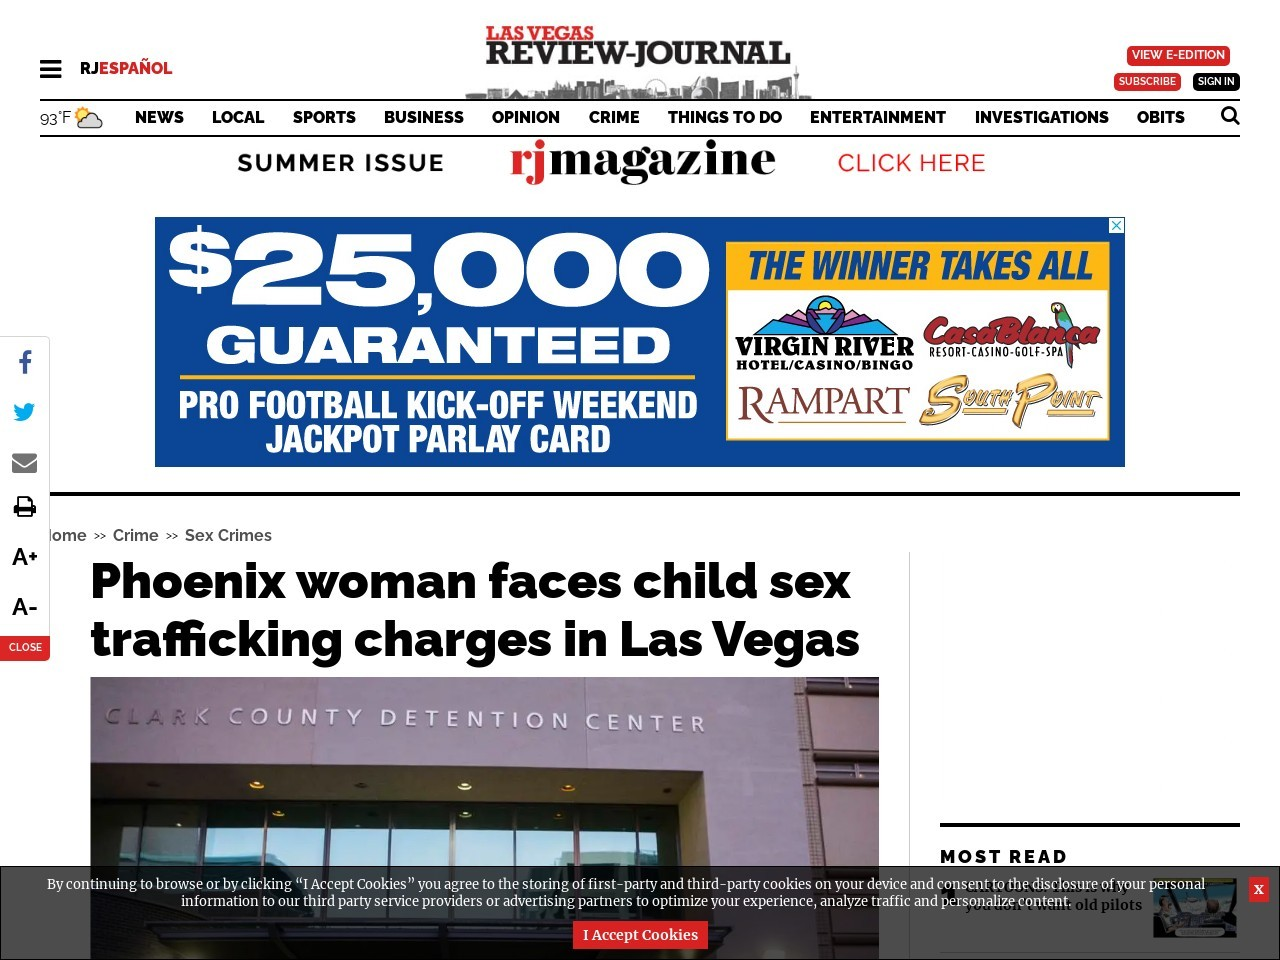 Phoenix woman faces child sex trafficking charges in Las Vegas